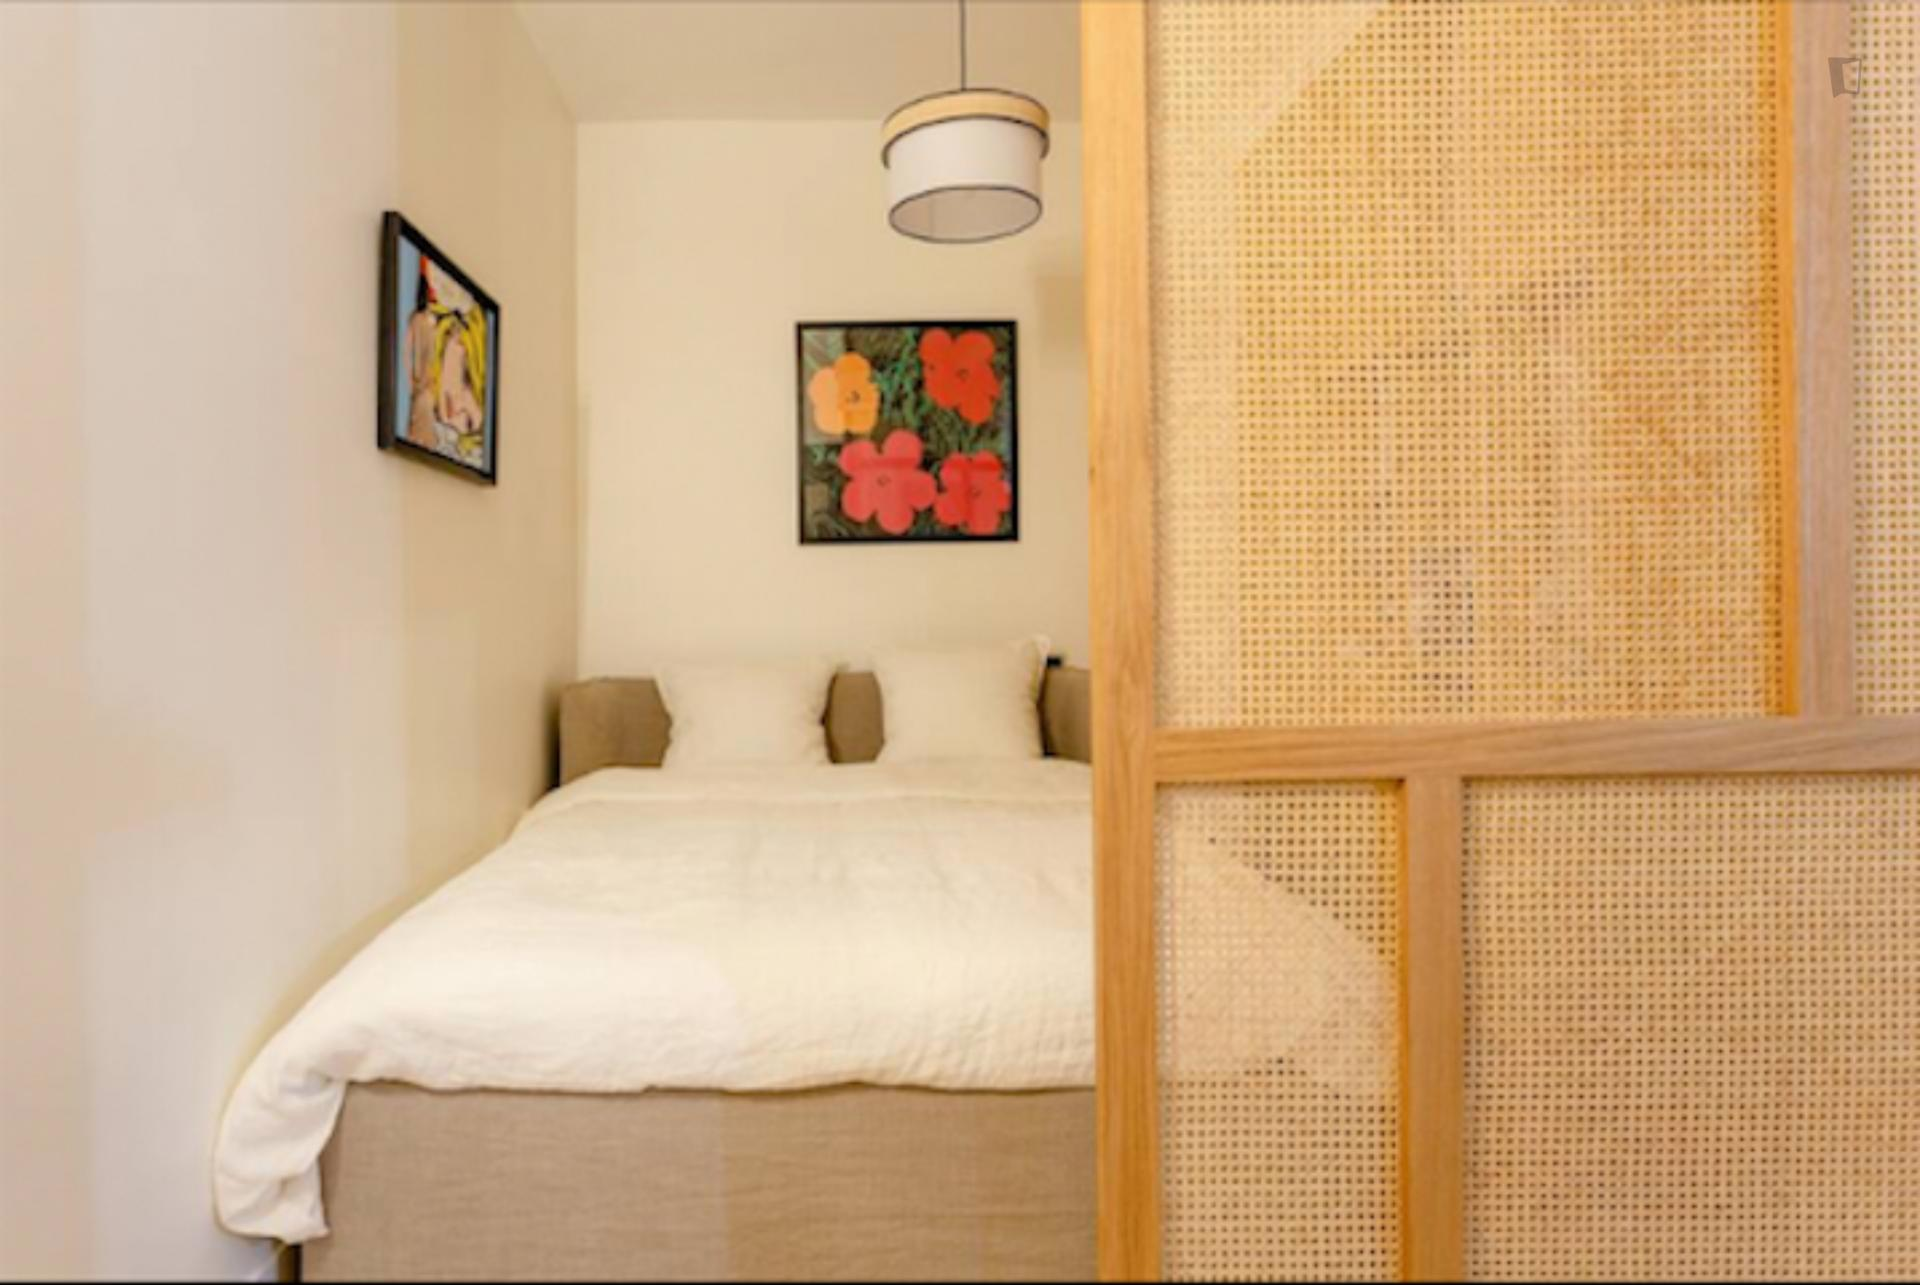 Temple is a spacious and modern studio in Paris